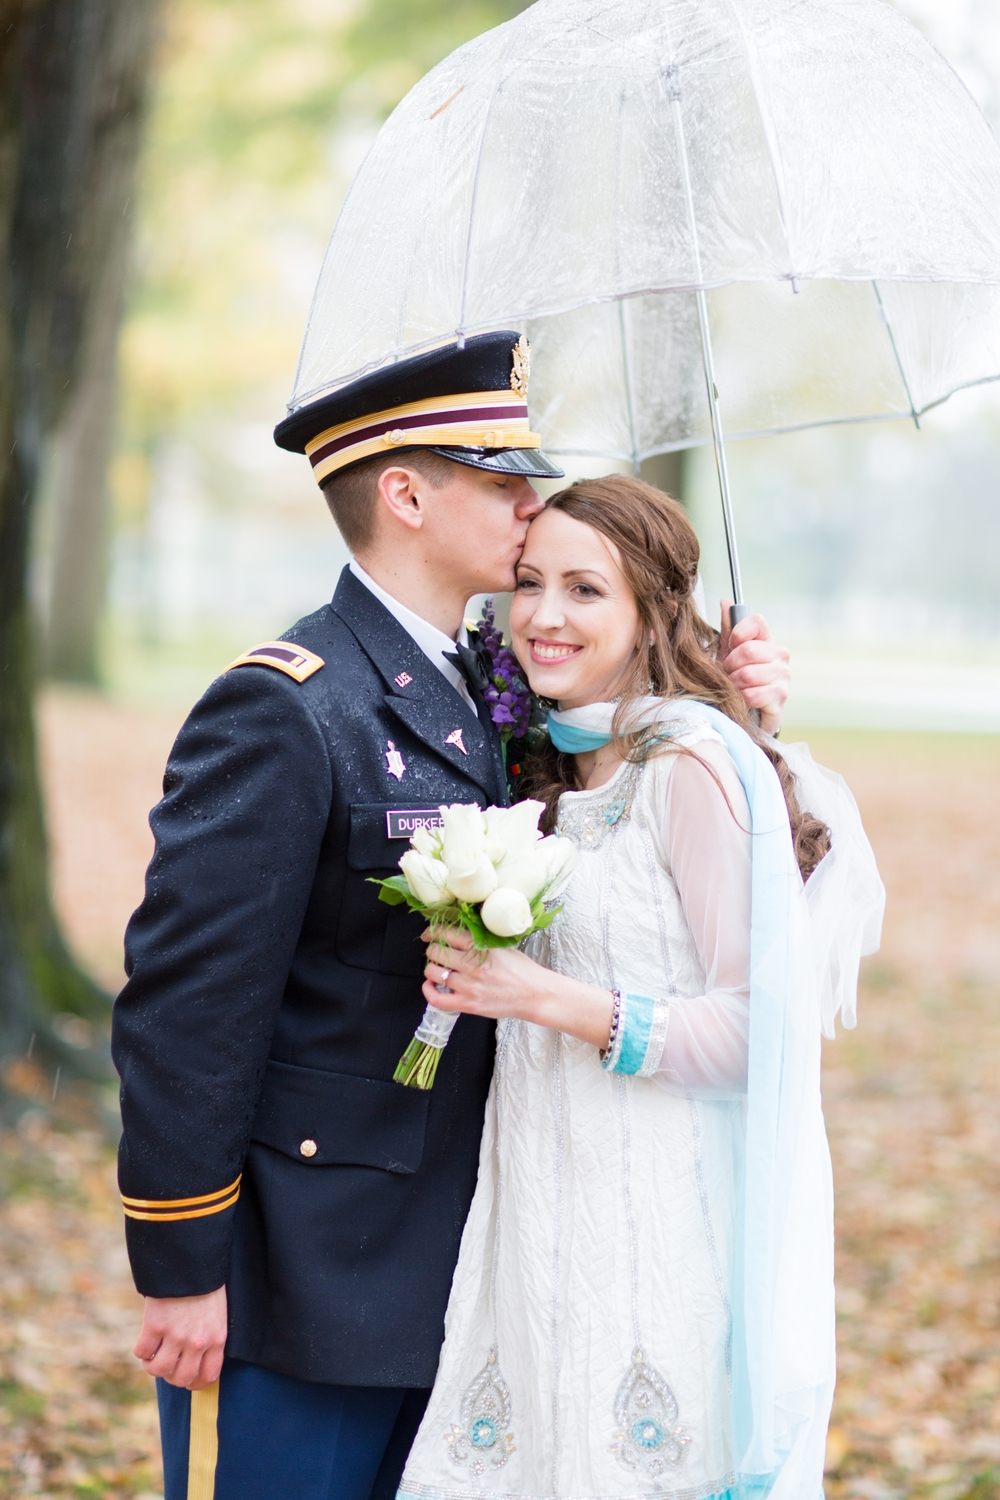 2. Durkee Wedding Bride & Groom Portraits-177_anna grace photography virginia wedding photographer dc war memorial washington dc photo.jpg